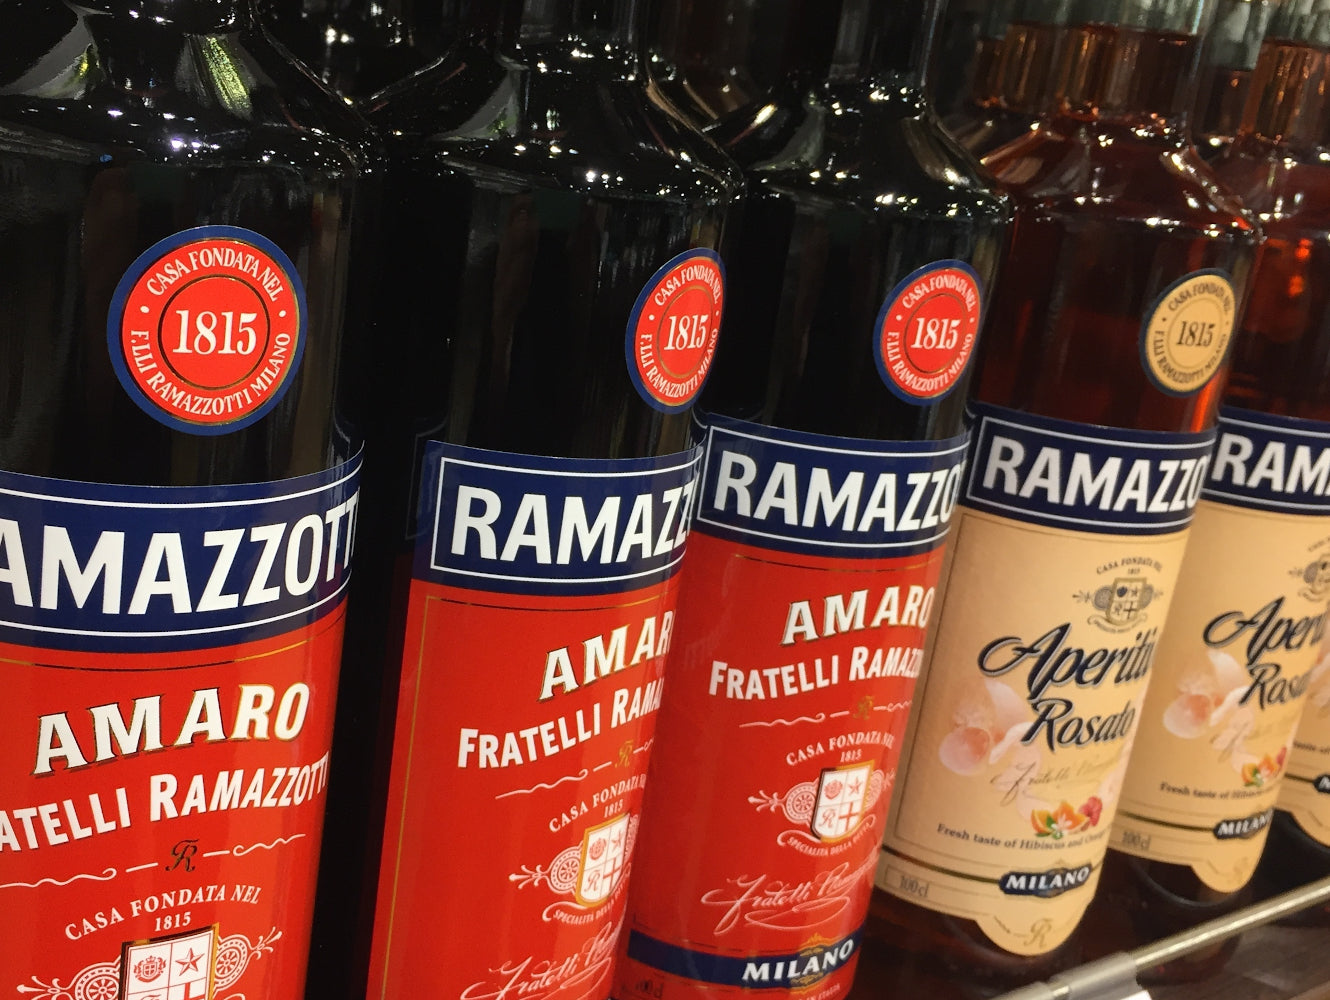 Photo of Ramazzotti Amaro and Aperitivo Rosso bottles